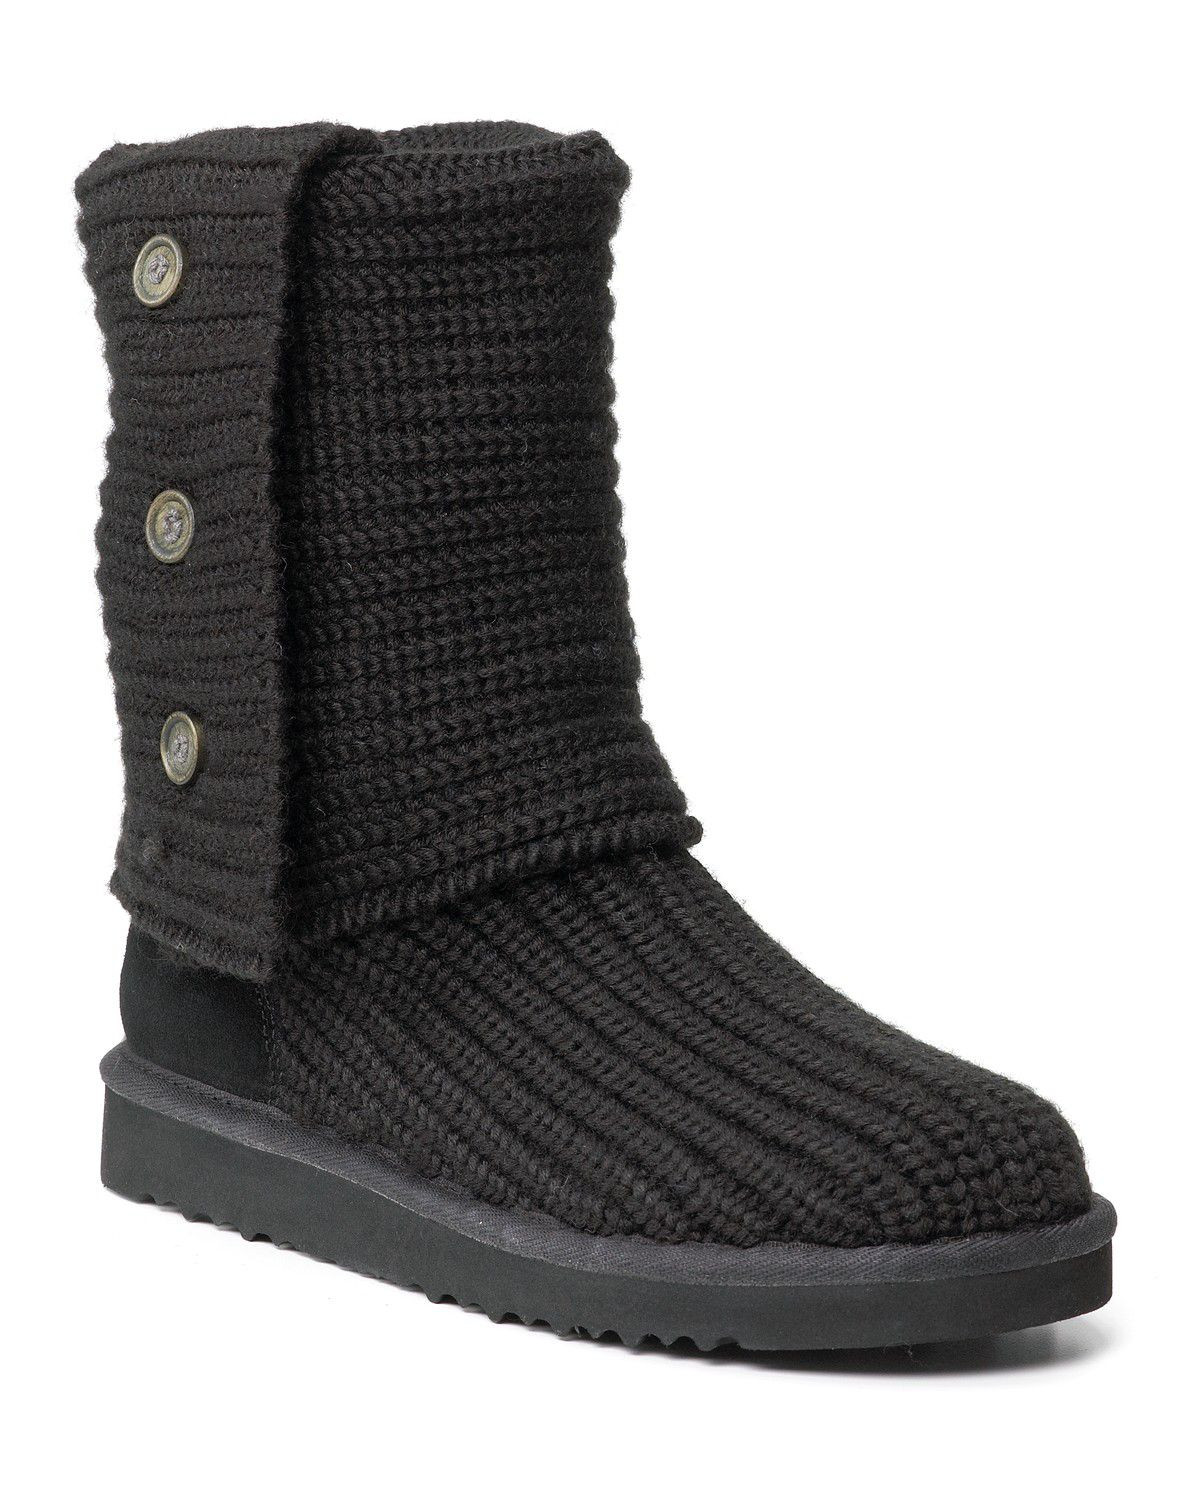 "Knit Boots Lovely Ugg Classic ""cardy"" Knit Boots In Black Of Luxury 48 Photos Knit Boots"